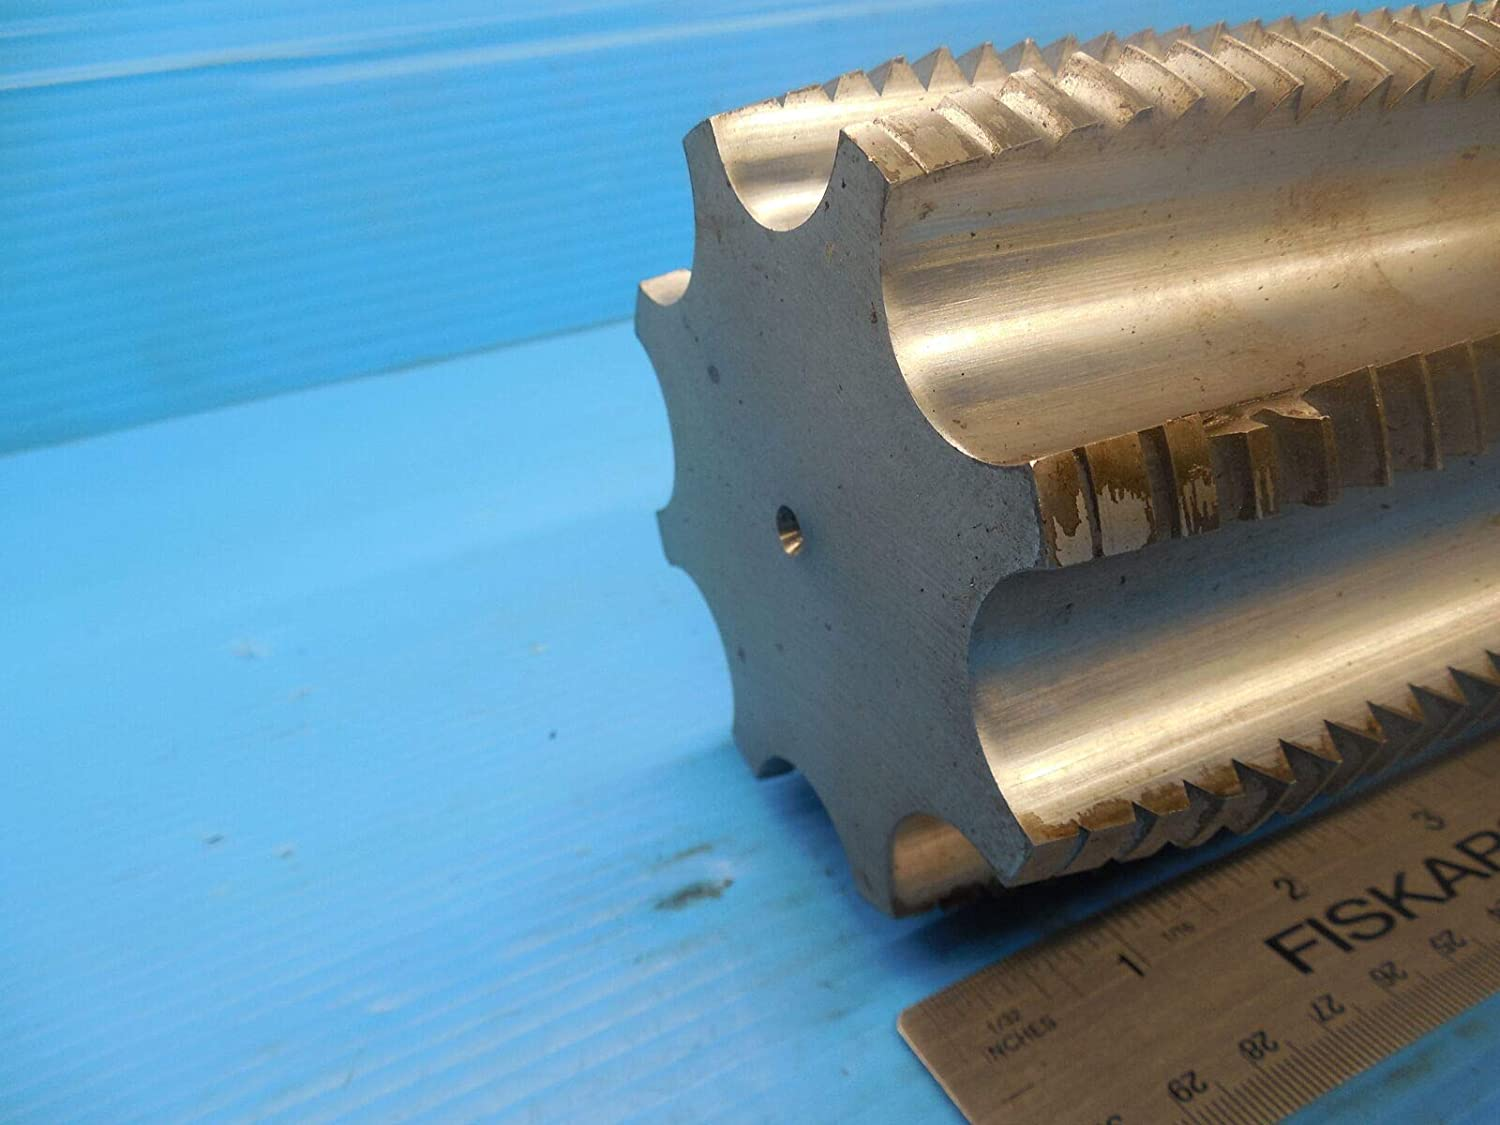 36 Teeth Uncoated Coating 5 Cutting Diameter HSS 3//32 Width KEO Milling 07680 Staggered Tooth Slitting Saw,MS Style Standard Cut 1 Arbor Hole